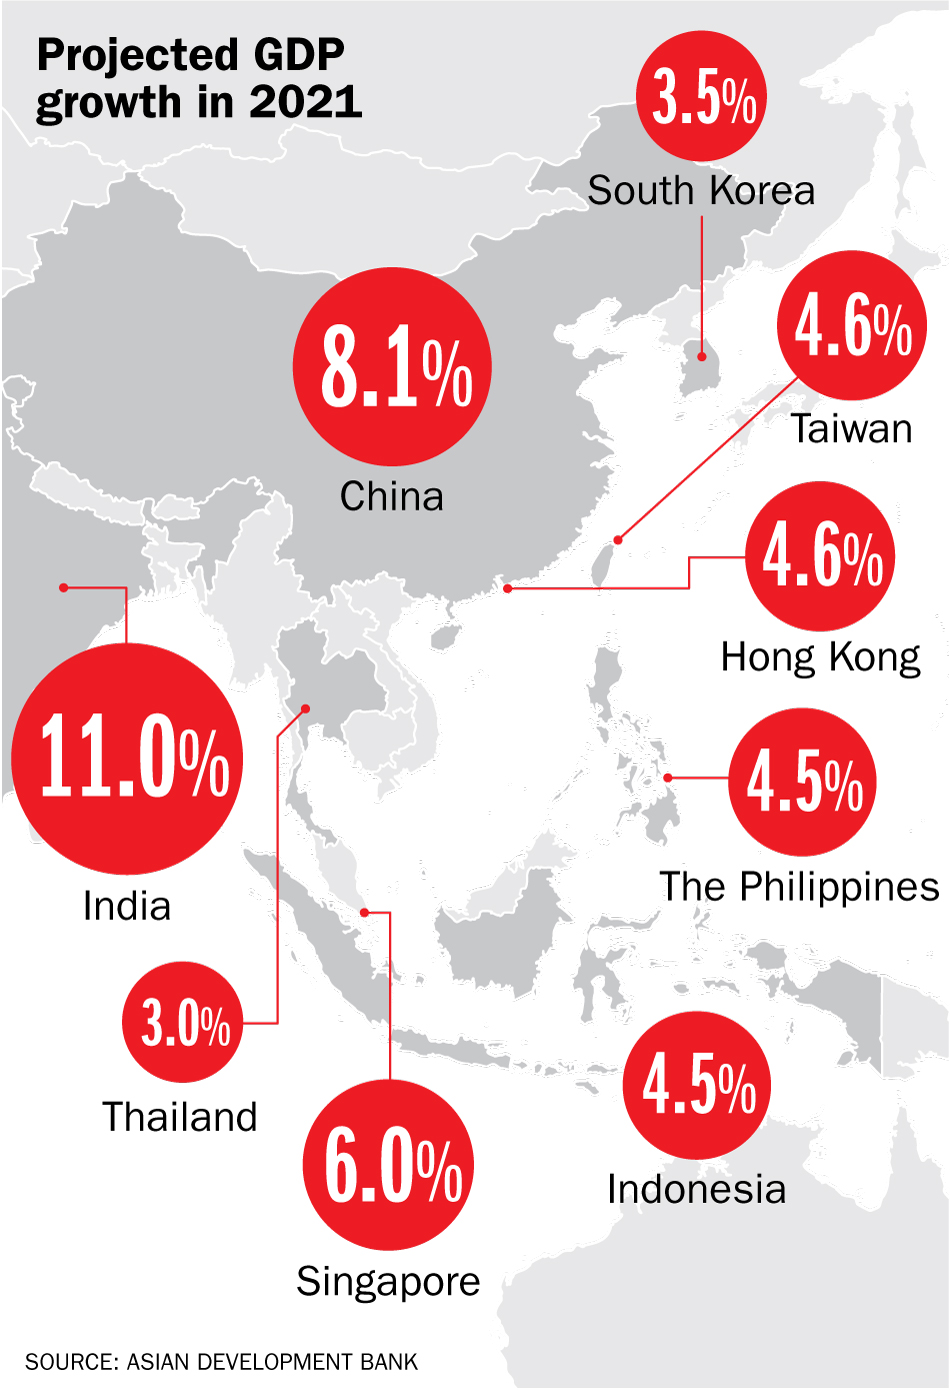 The 46 economies across the Asia-Pacific region, excluding Japan and Australia, are projected to rebound from the pandemic and grow by 7.3% in 2021, according to the Asian Development Bank.